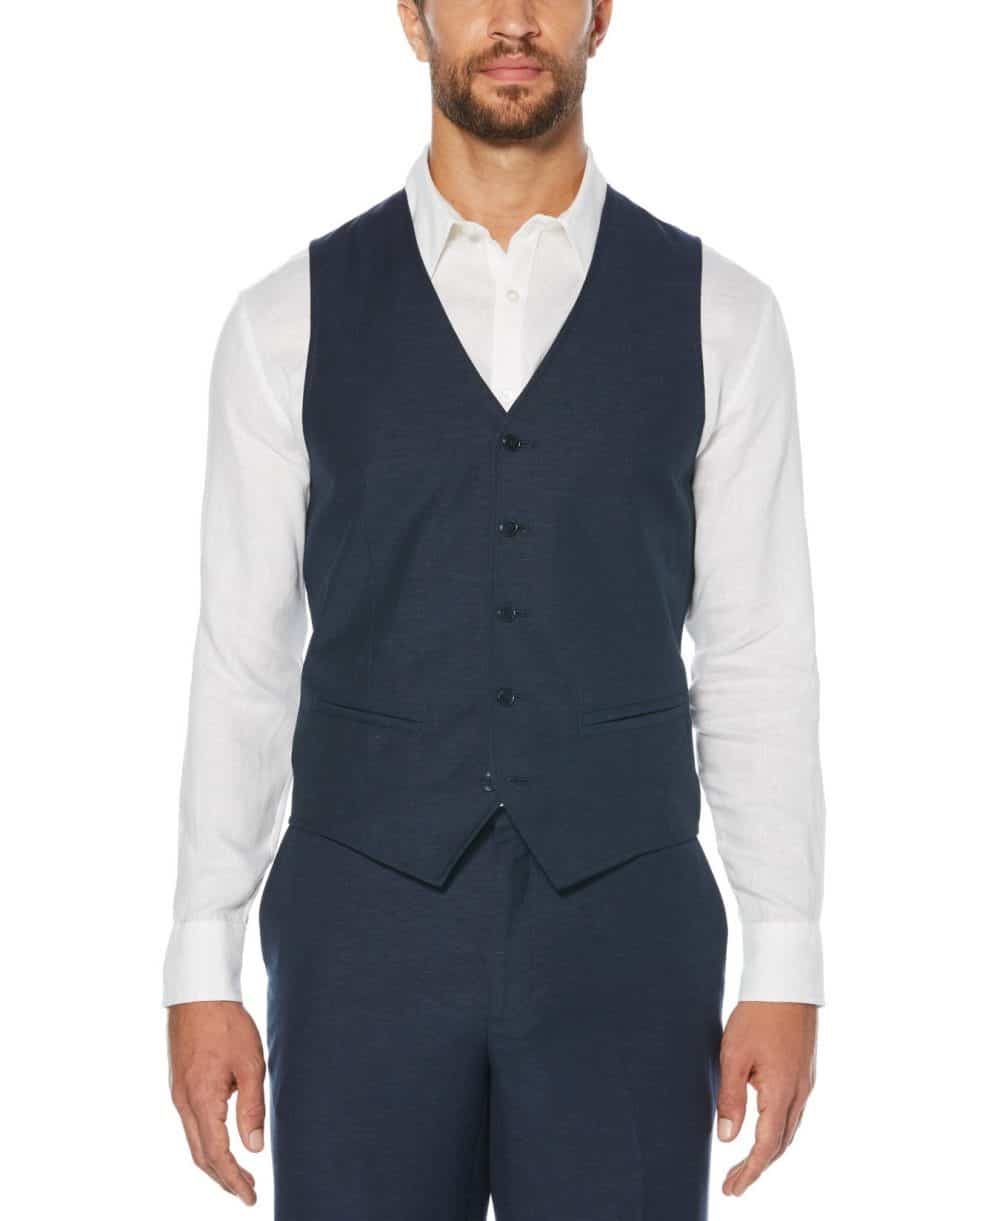 Cubavera Men's Pinstitched Vest (Dress Blues) - Size L